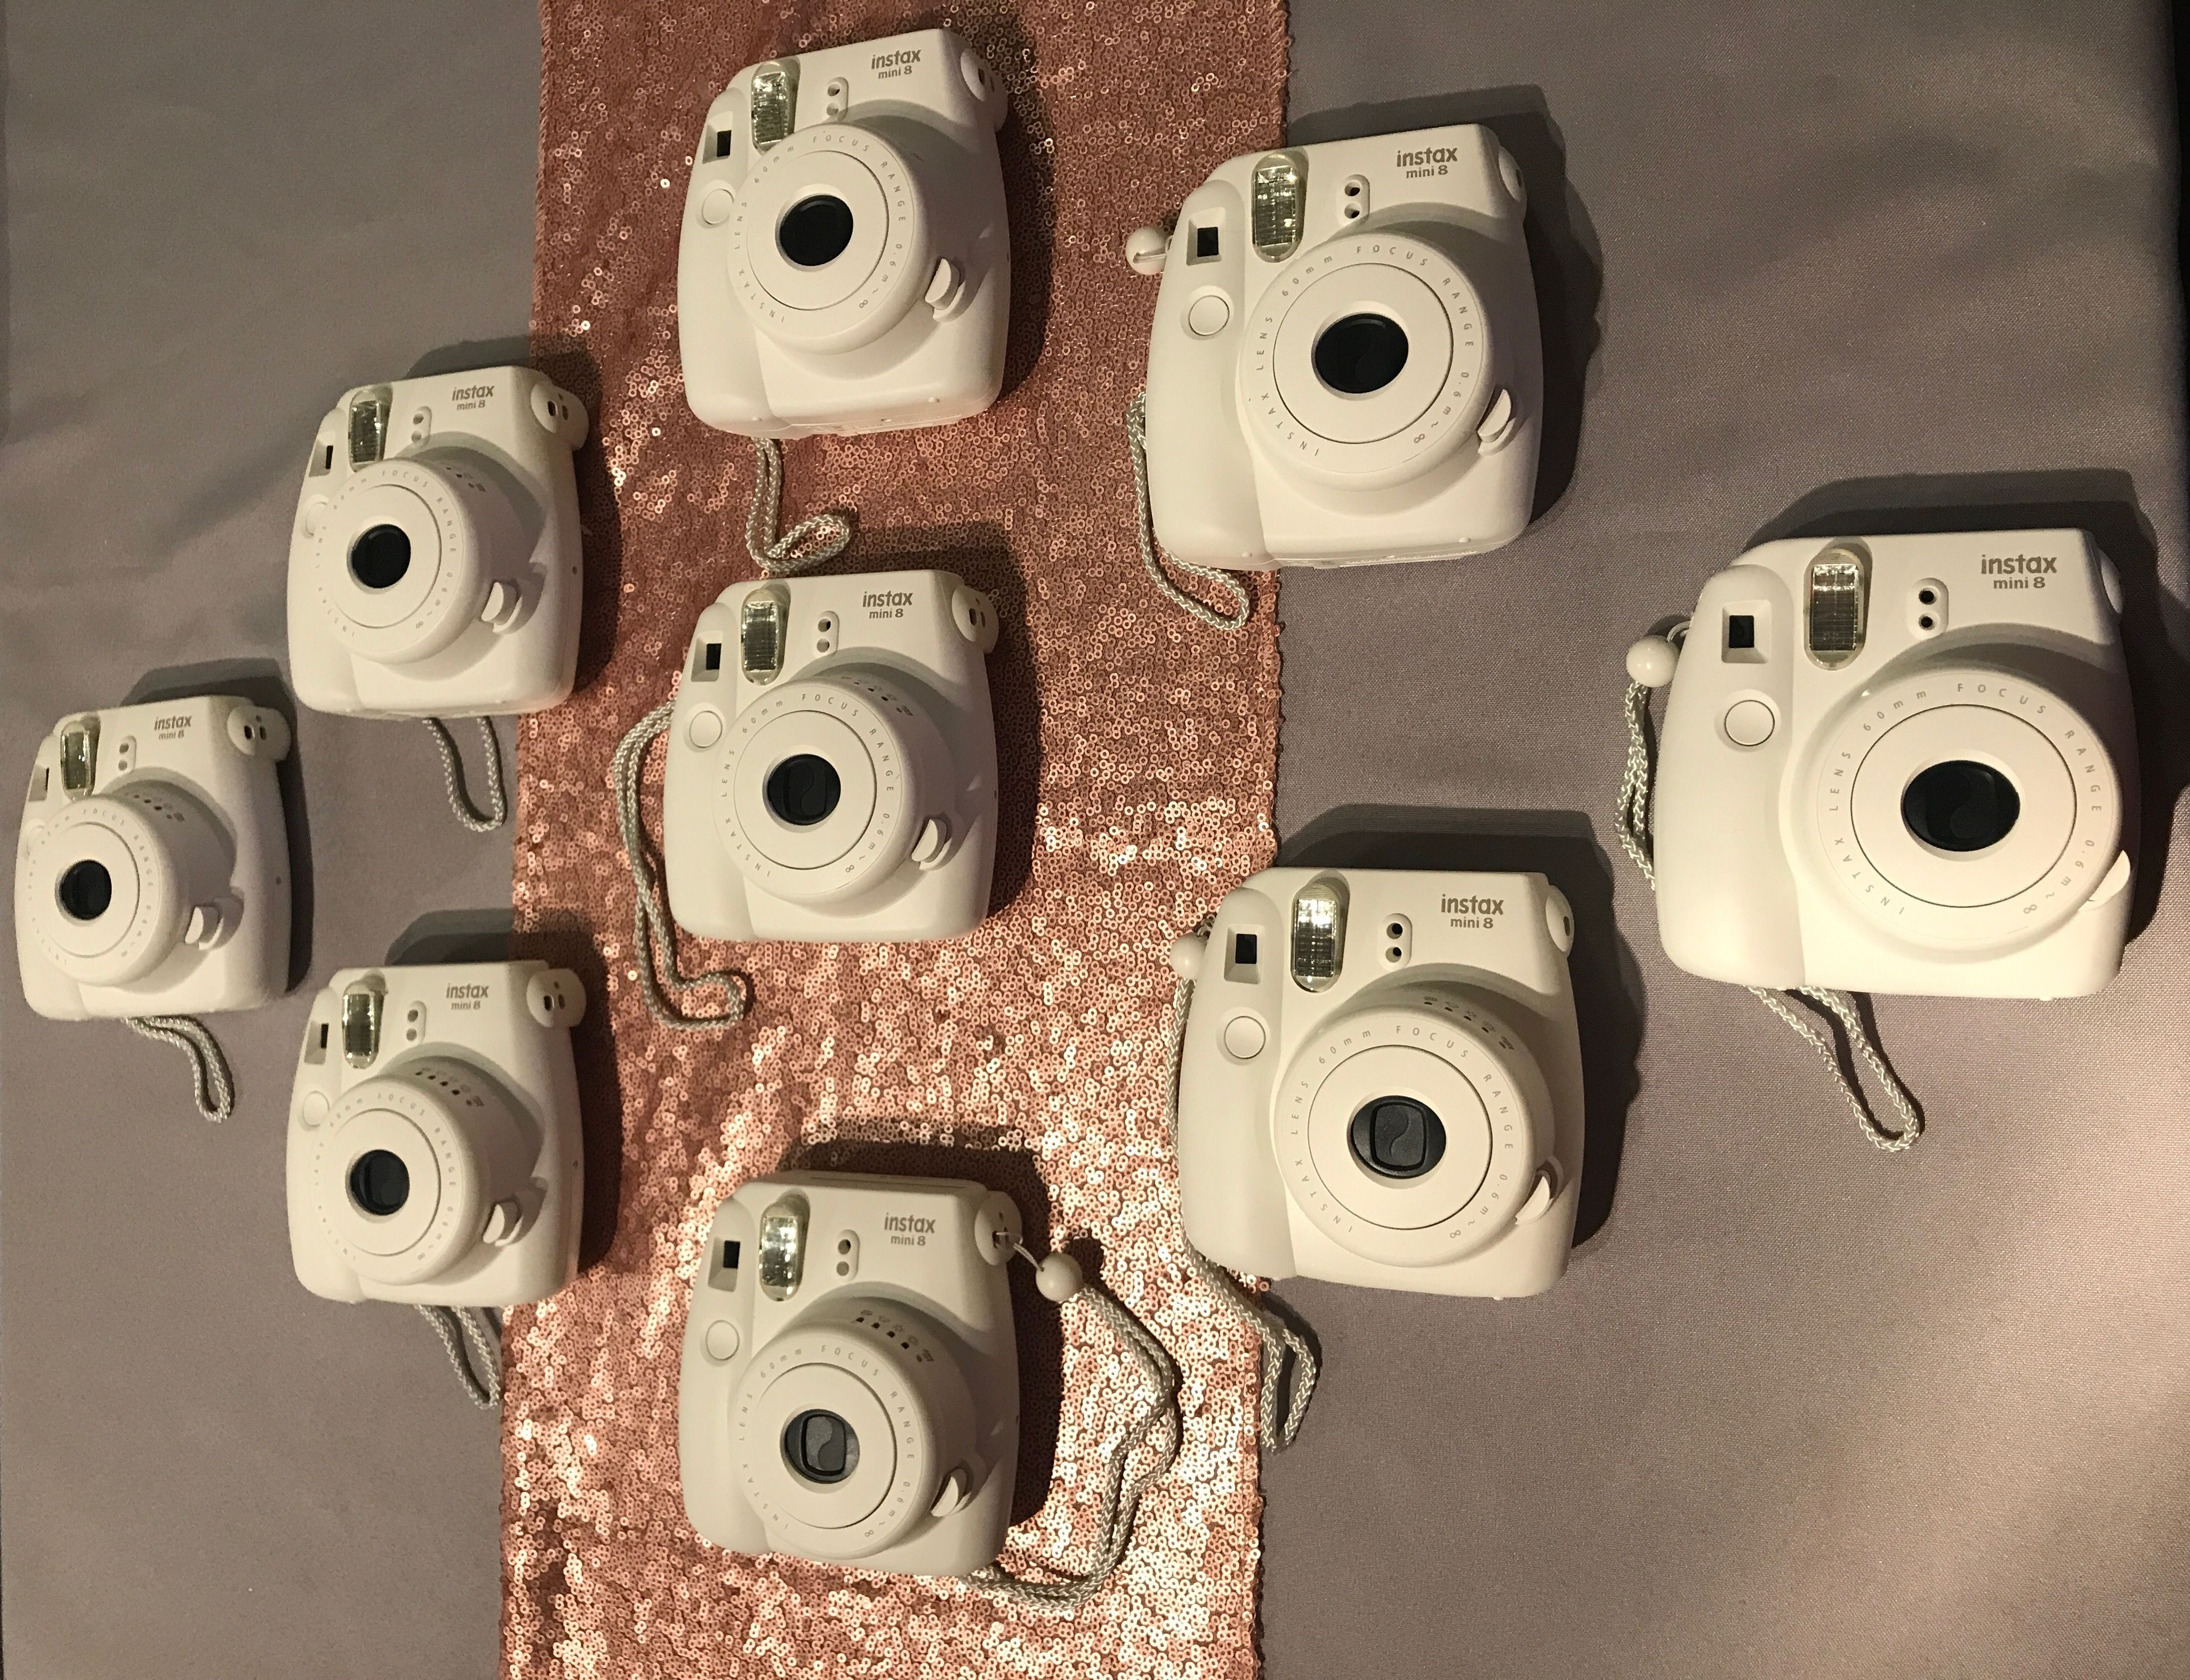 Rustikale Len 10 instax mini 8 cameras for hire from witney weddings events